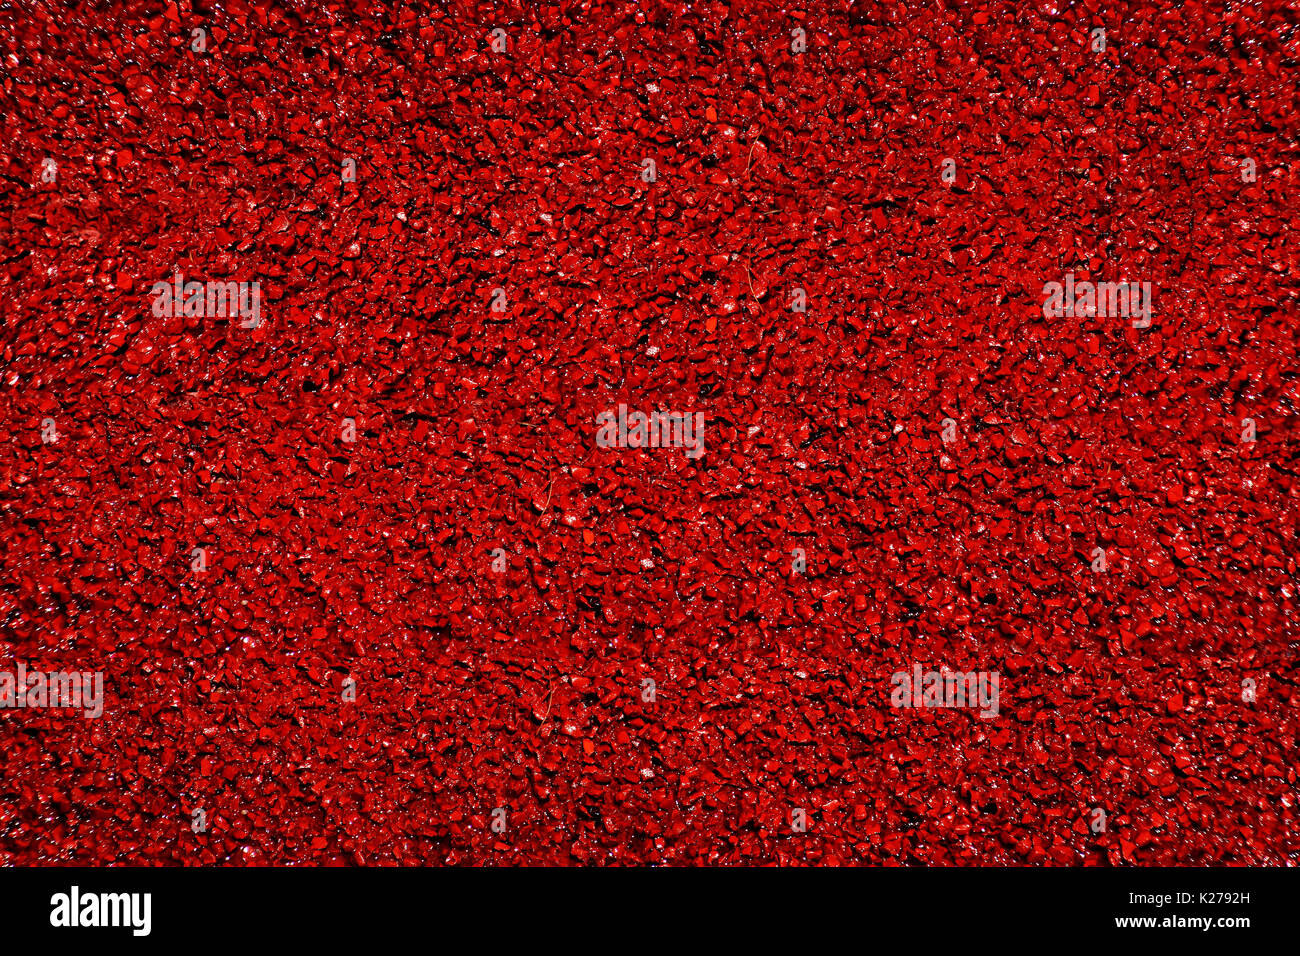 Blood Texture Background High Resolution Stock Photography And Images Alamy Looking for the best deep red background? alamy